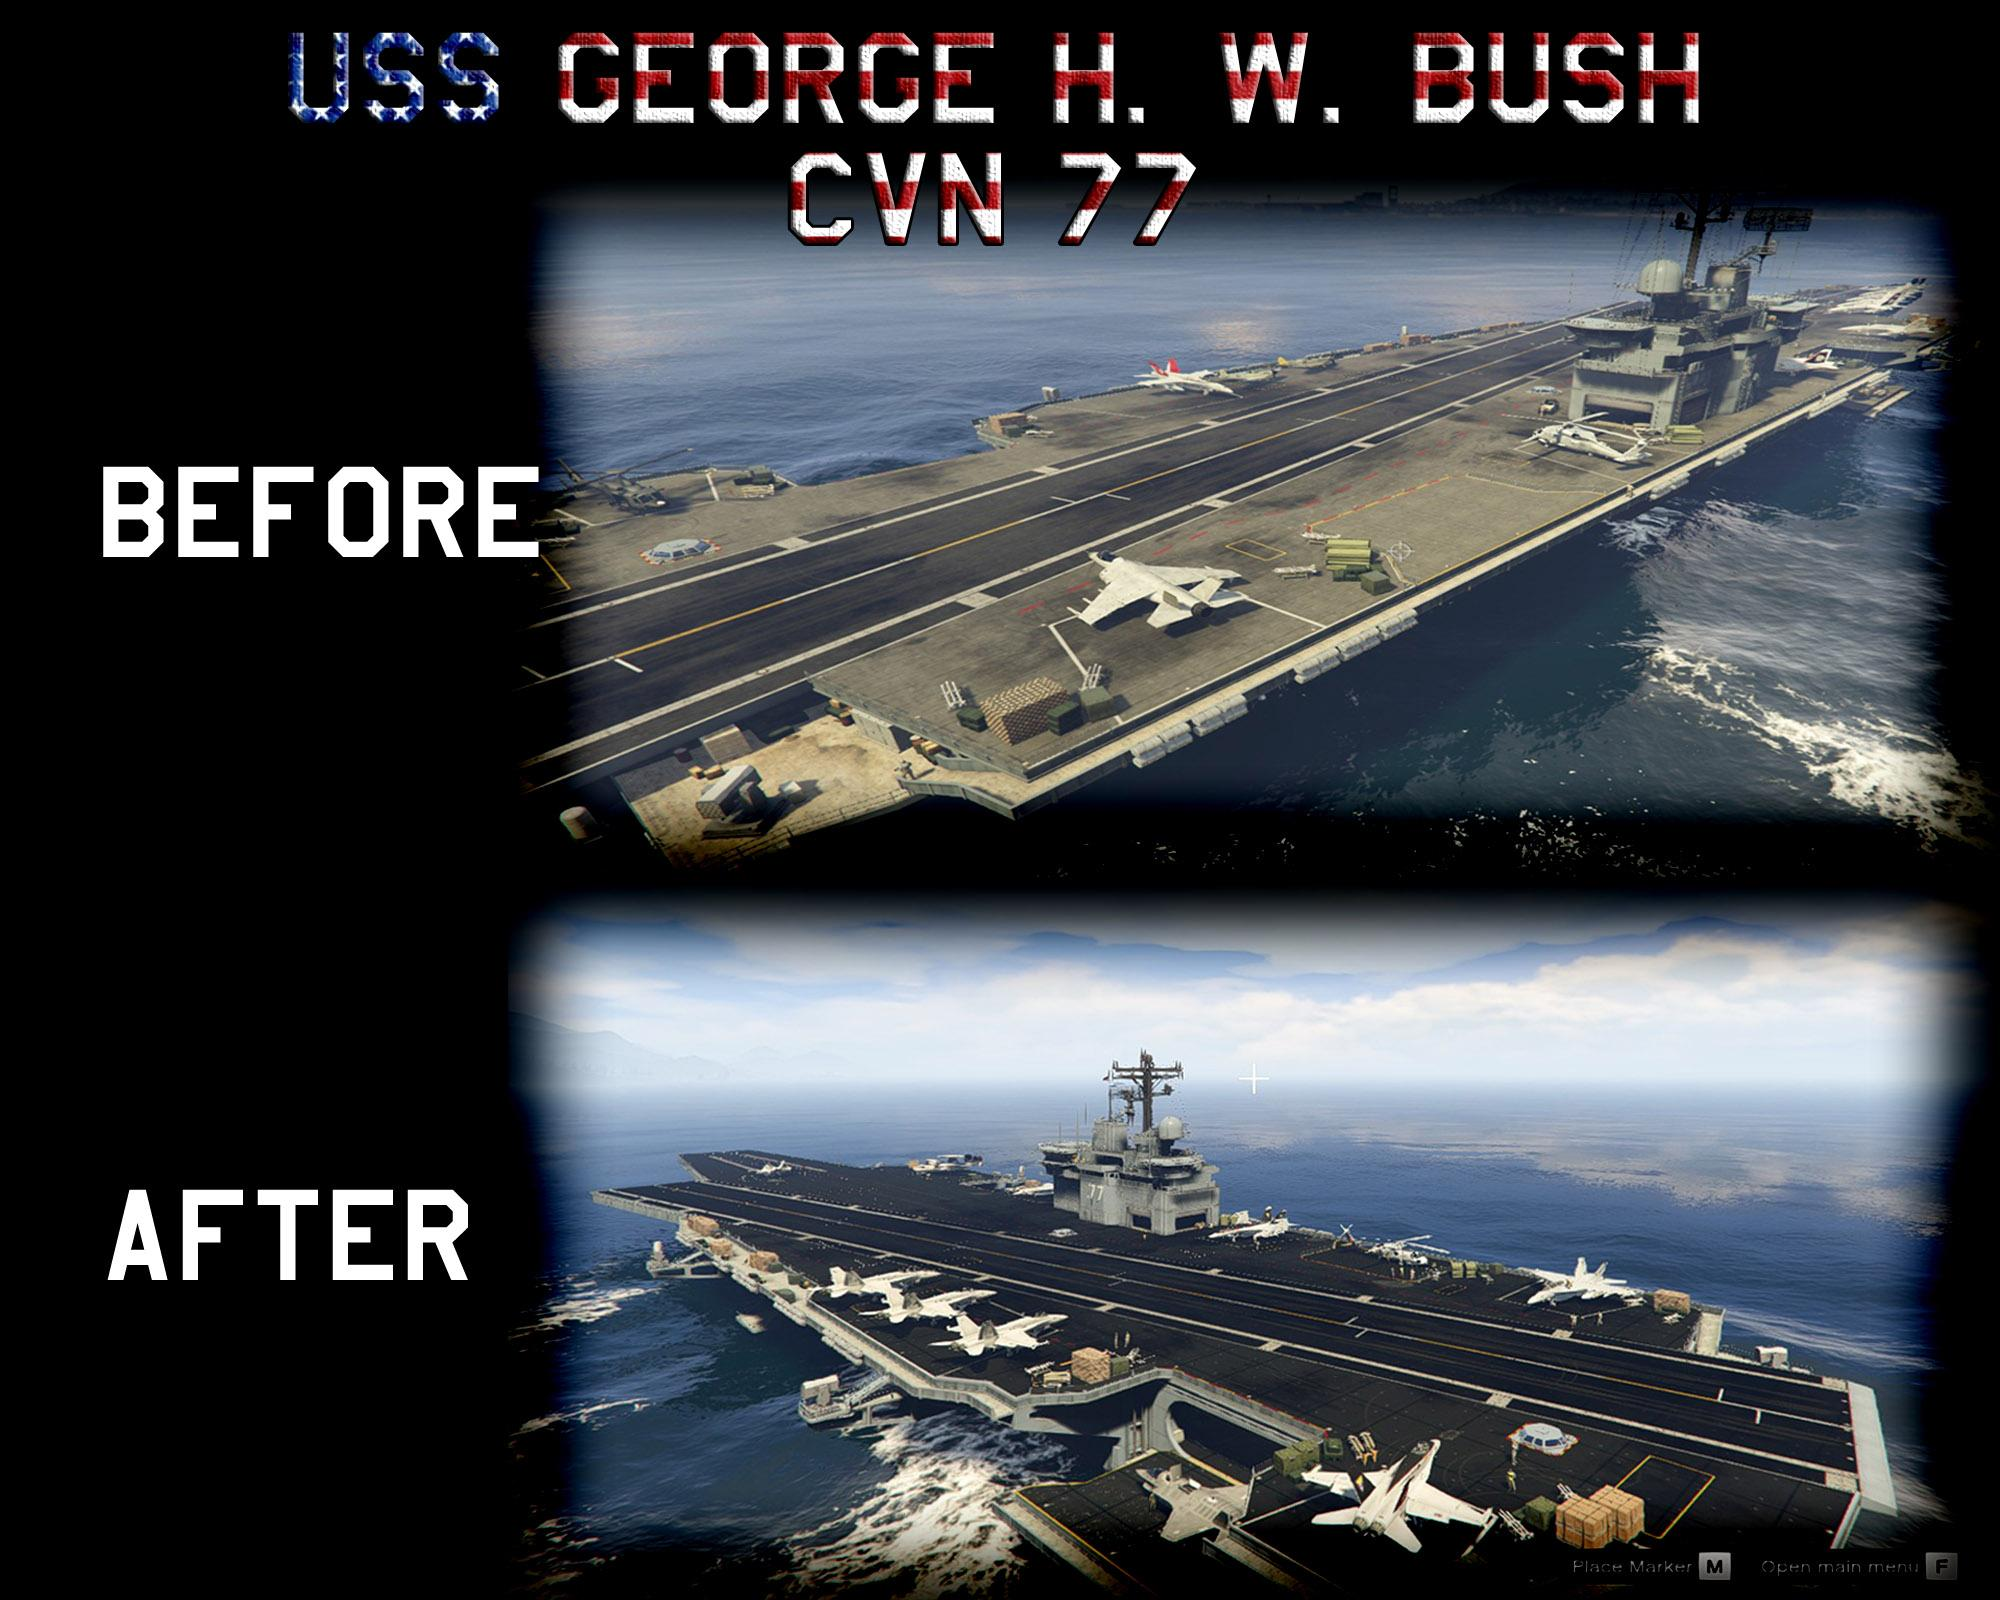 Uss George H W Bush Cvn 77 Skin Pack Gta5 Mods Com